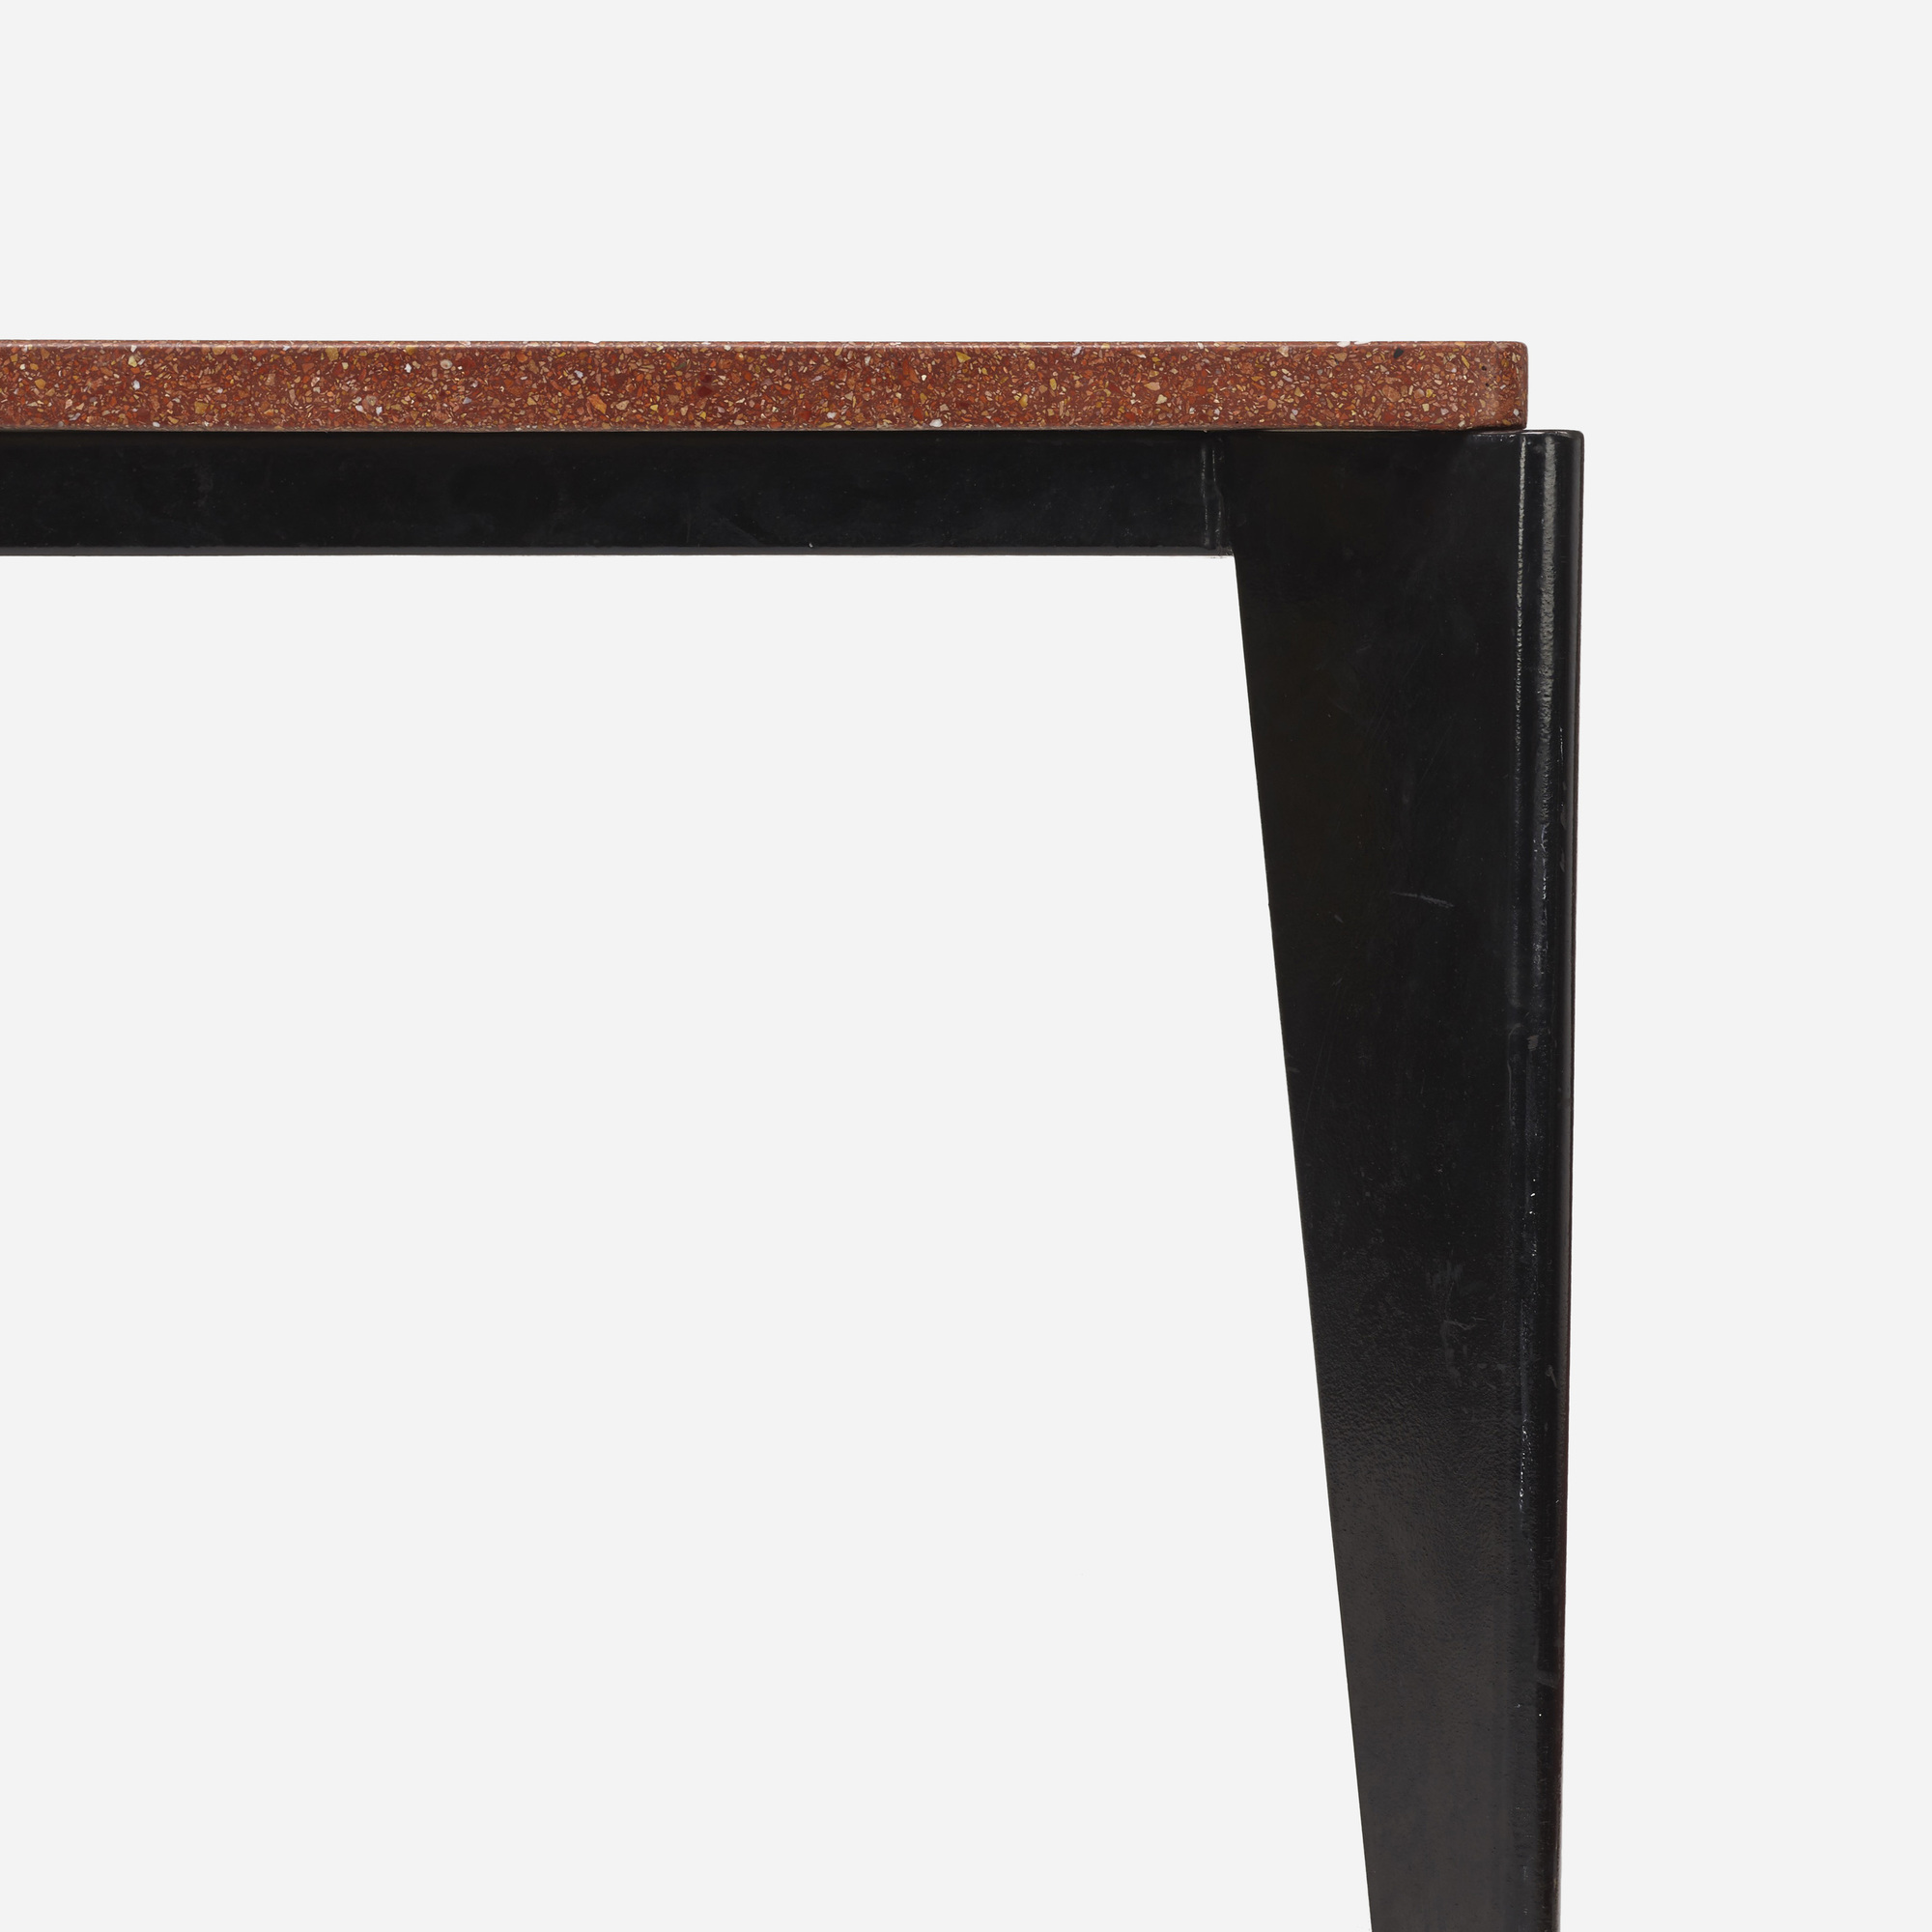 135: Jean  Prouvé / Flavigny dining table (3 of 5)